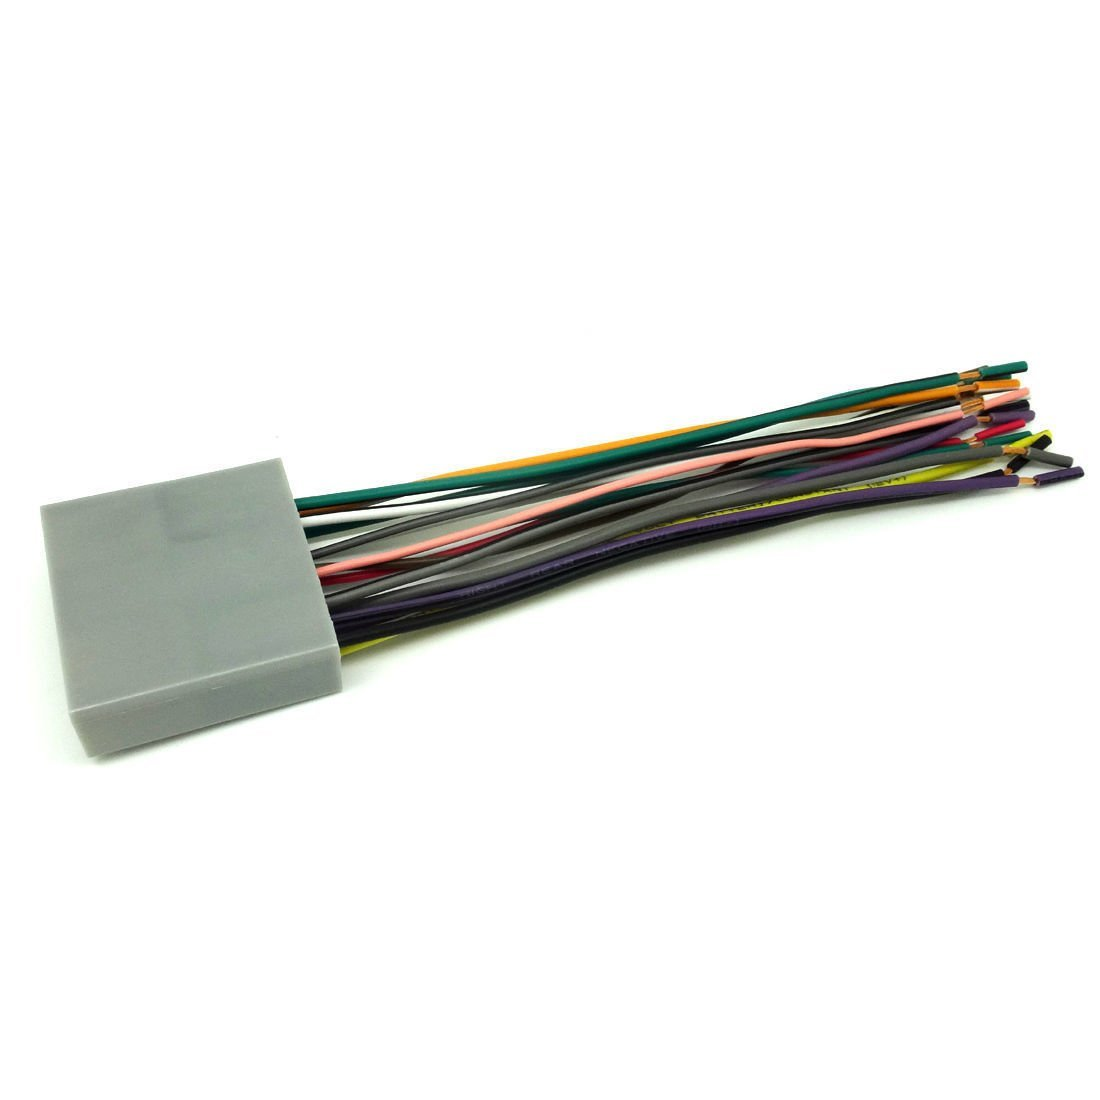 hight resolution of conpus car stereo cd player wiring harness wire adapter plug for aftermarket radio 2007 2011